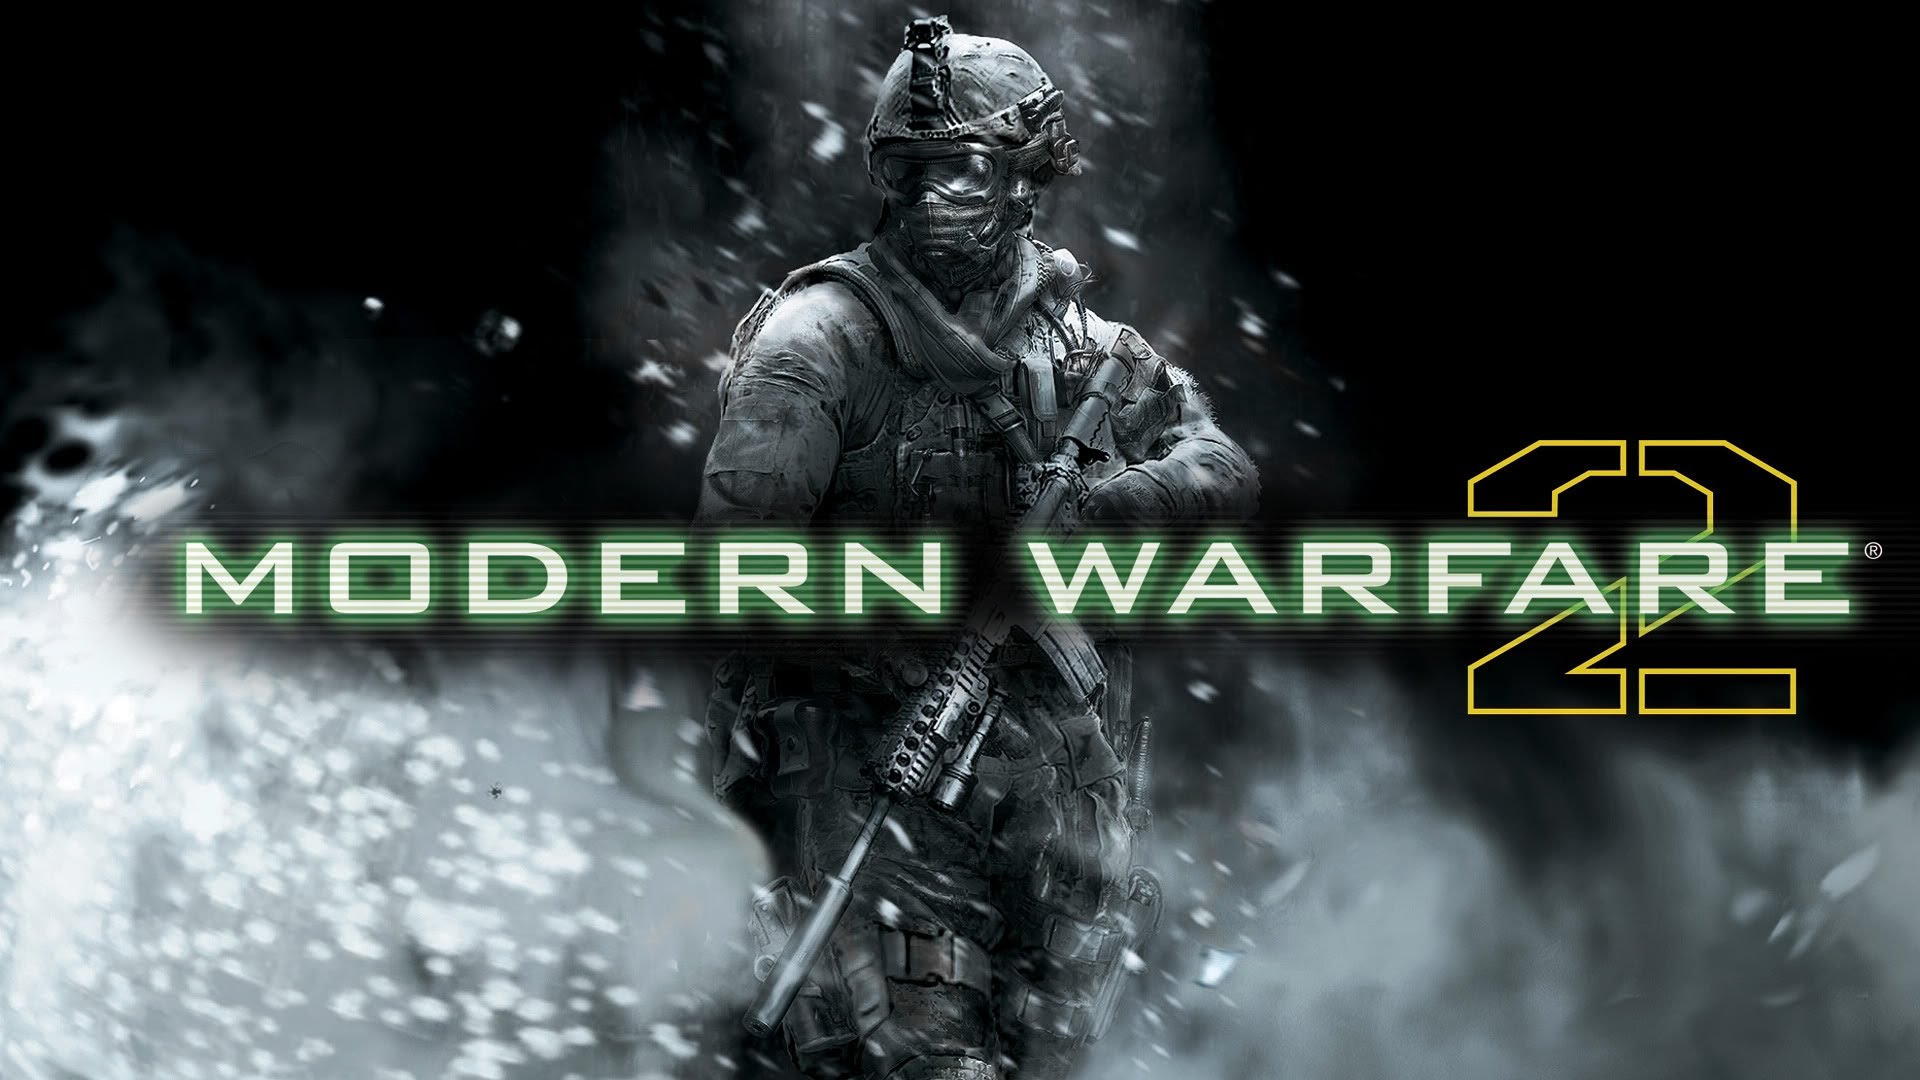 Cod Mw2 Wallpaper 1920x1080 2563